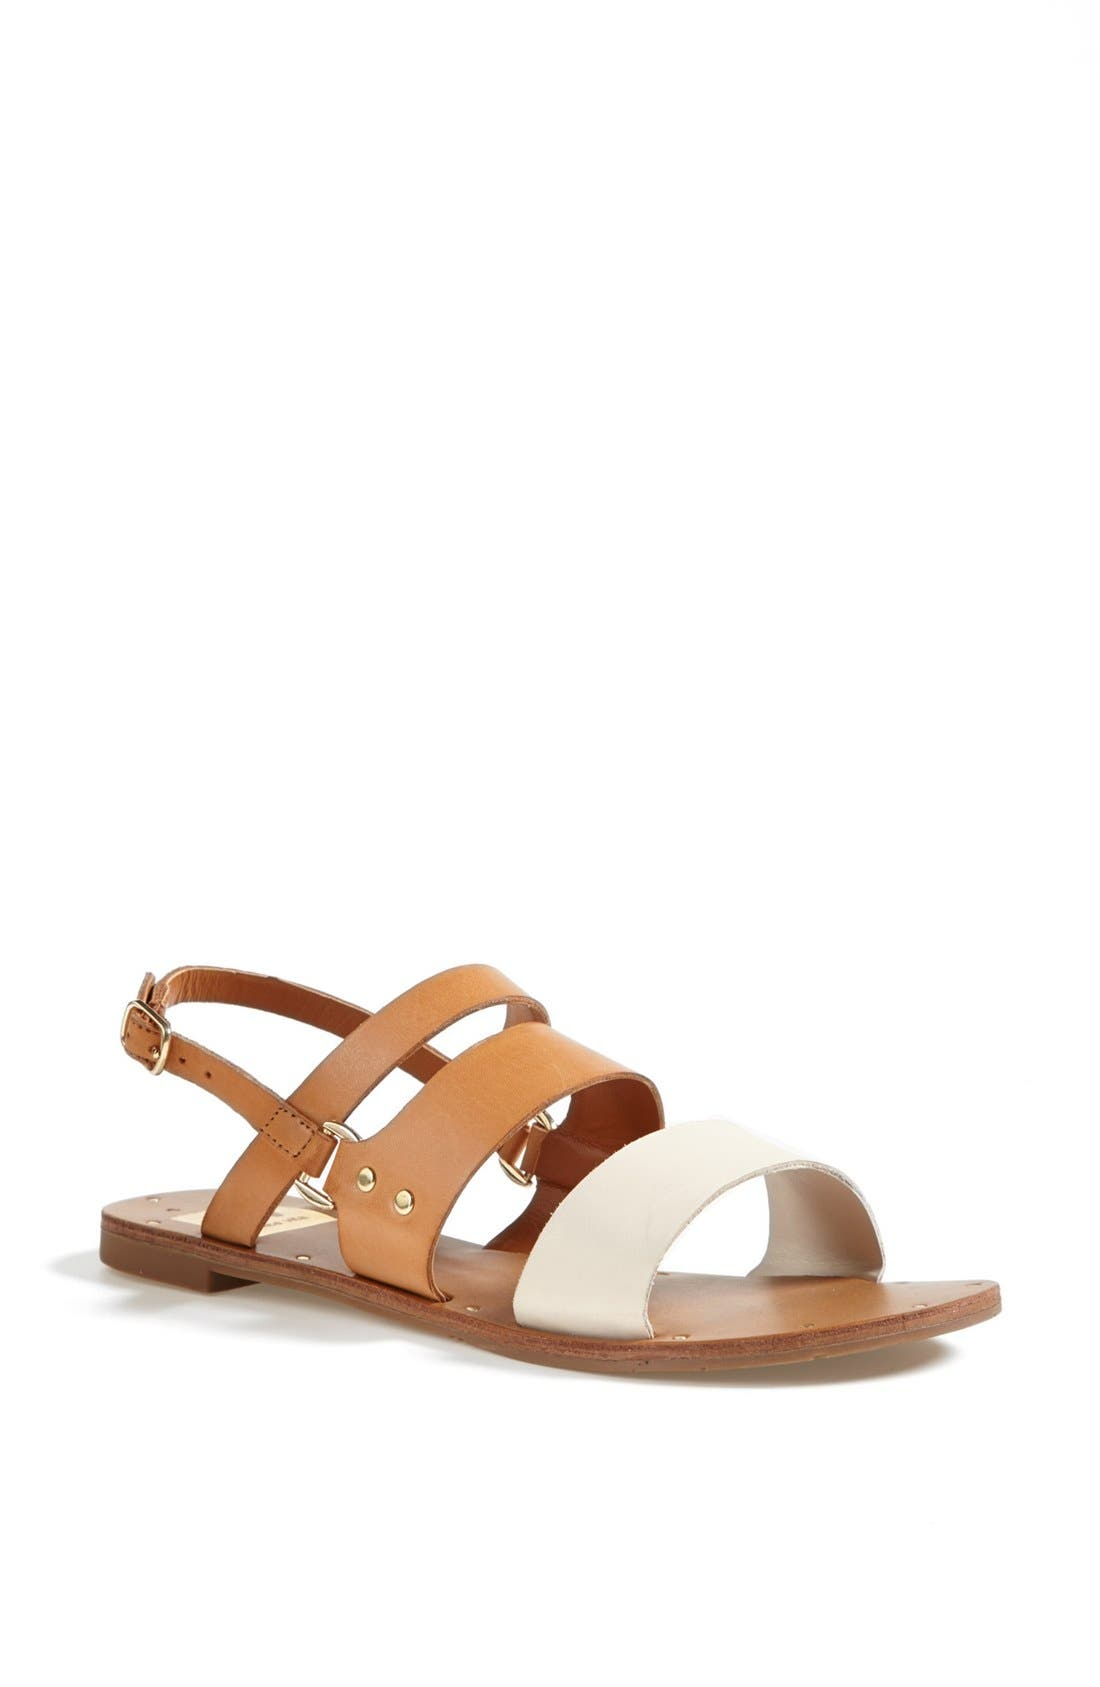 Main Image - DV by Dolce Vita 'Deah' Sandal (Nordstrom Exclusive)